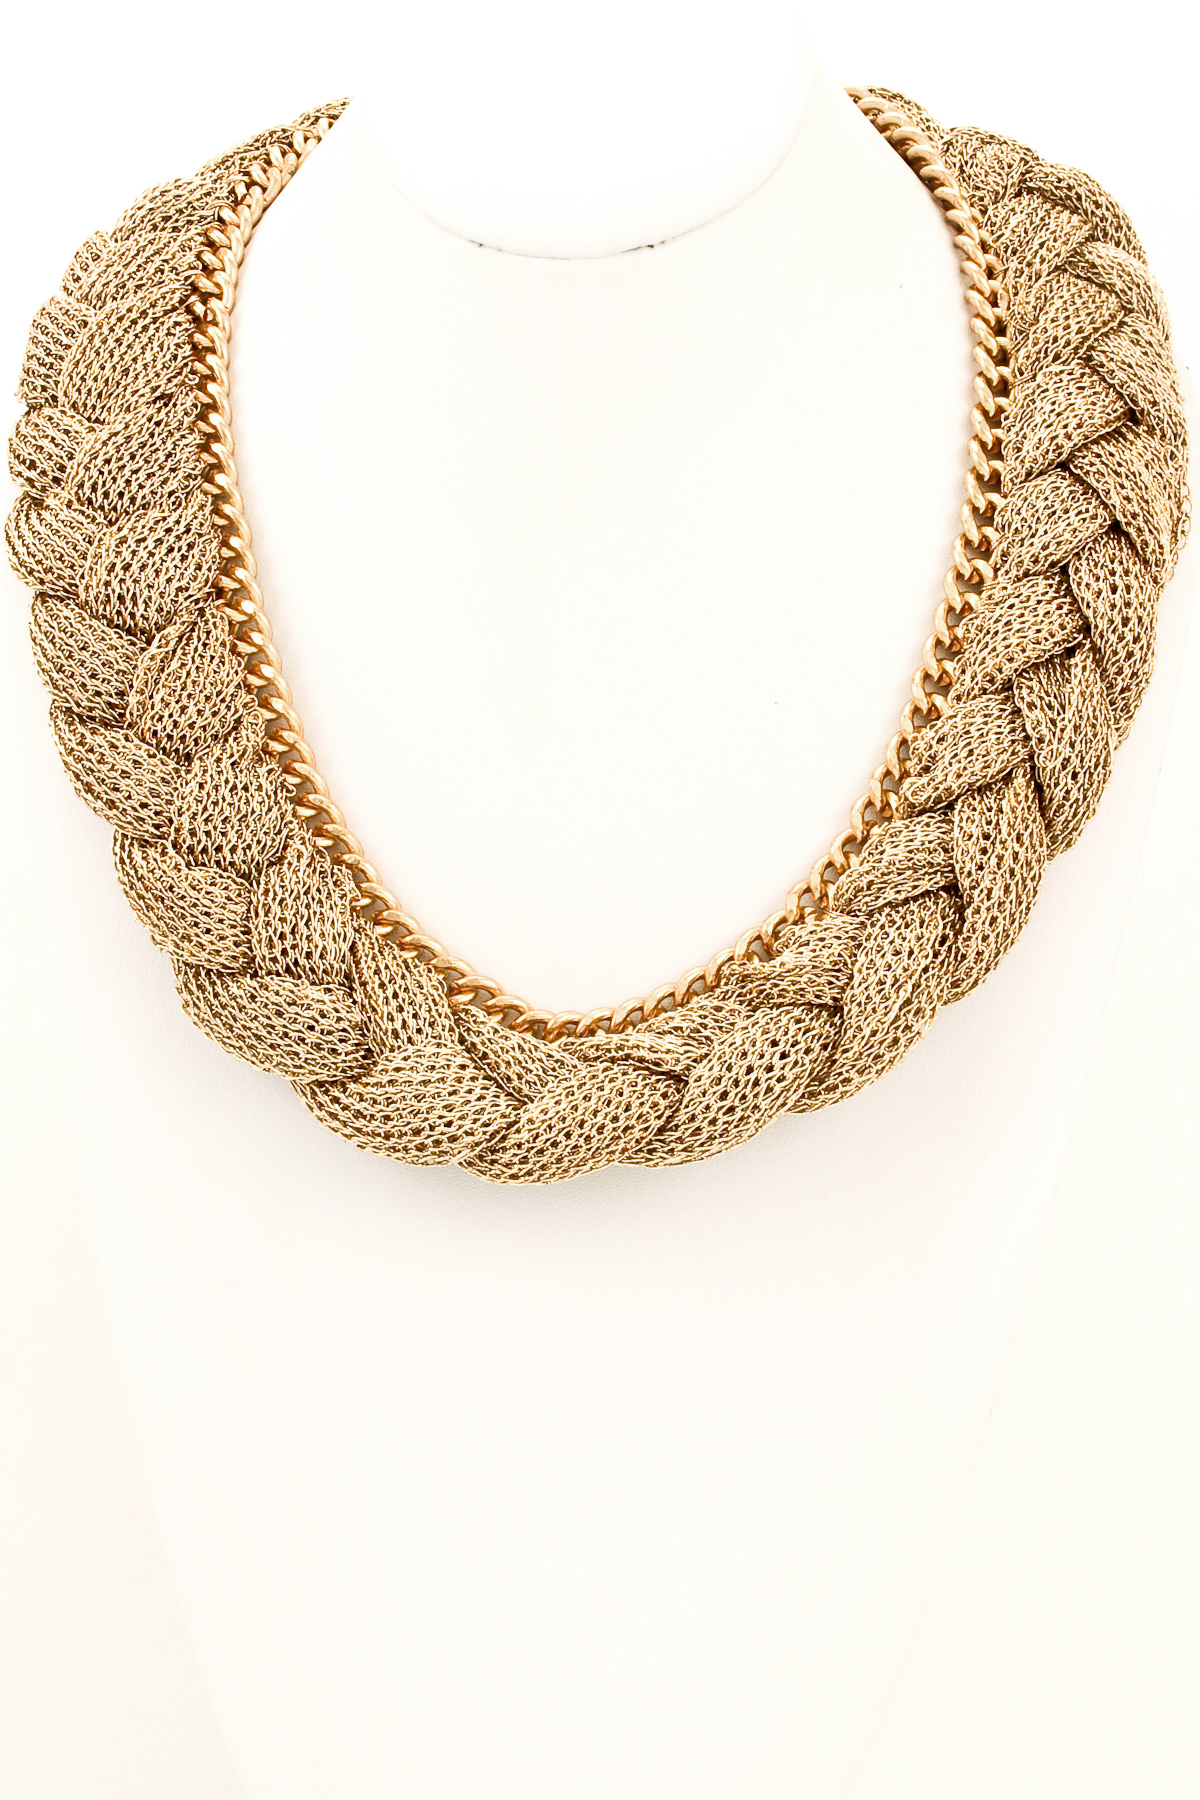 livemaster shop item in jewelry necklace mesh on colletto the pearls handmade online vortex necklaces beads